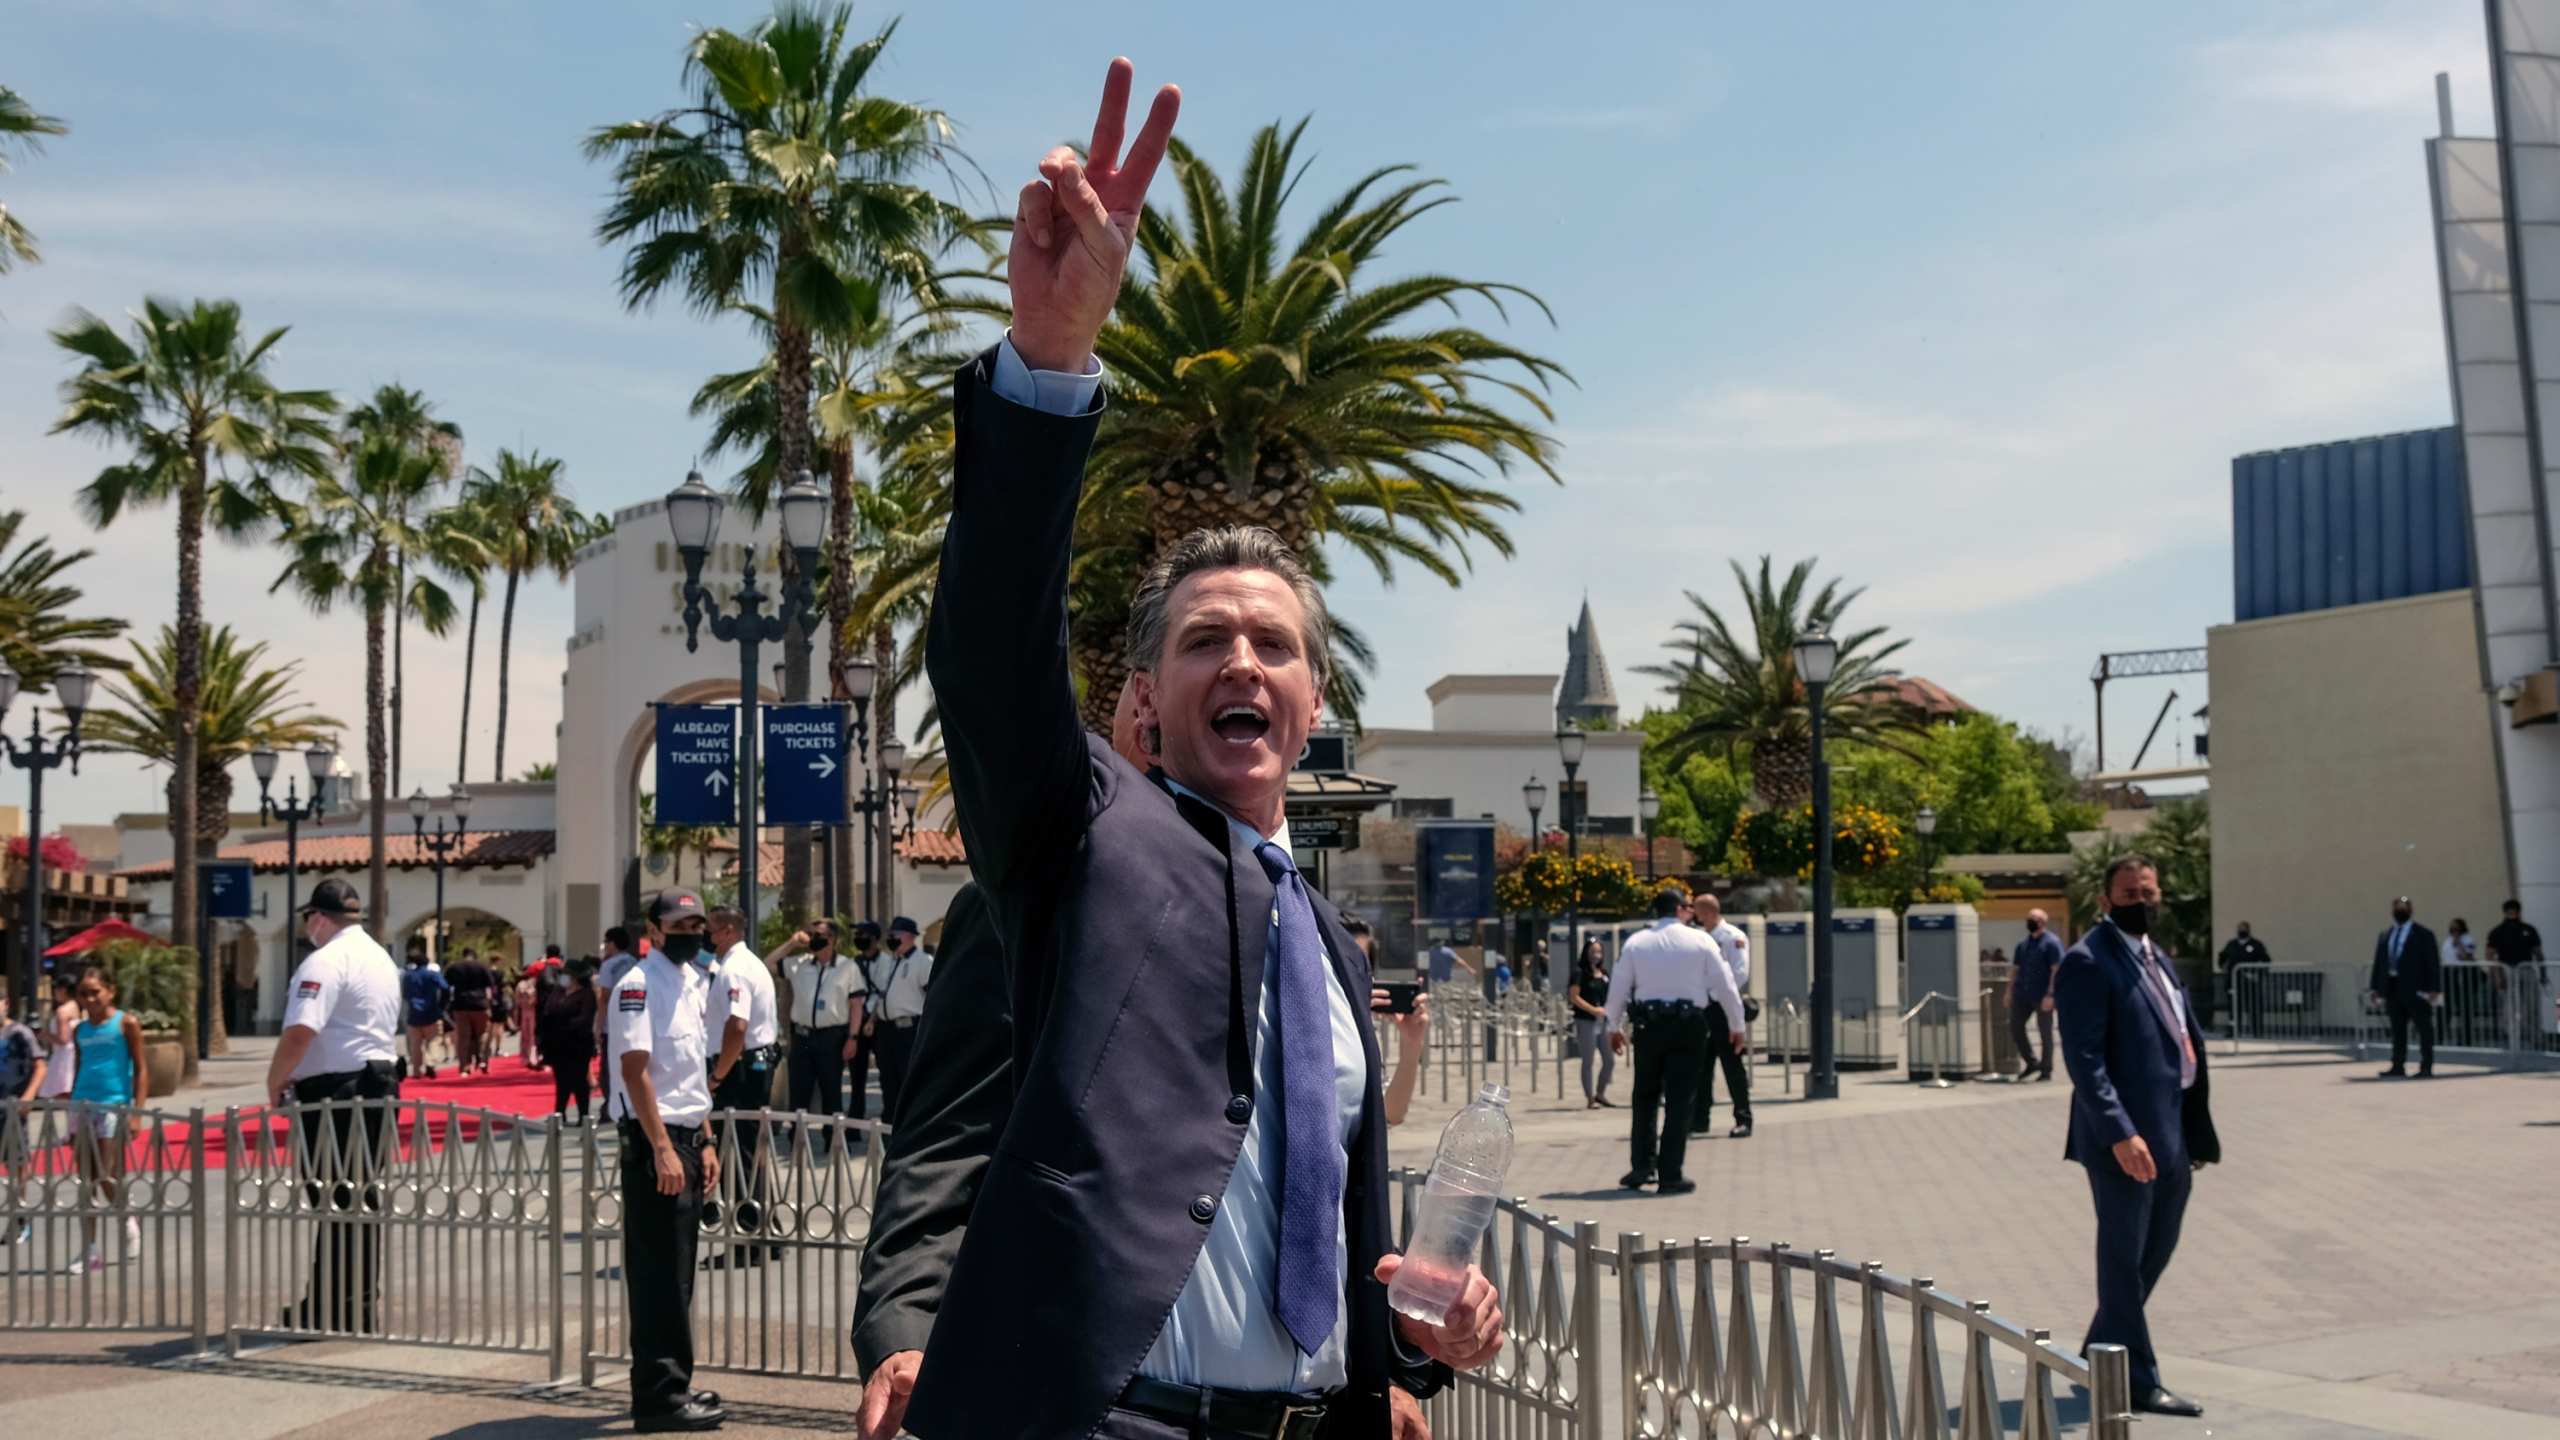 In this June 15, 2021, file photo California Gov. Gavin Newsom gestures after a news conference at Universal Studios in Universal City, Calif. (AP Photo/Ringo H.W. Chiu, File)